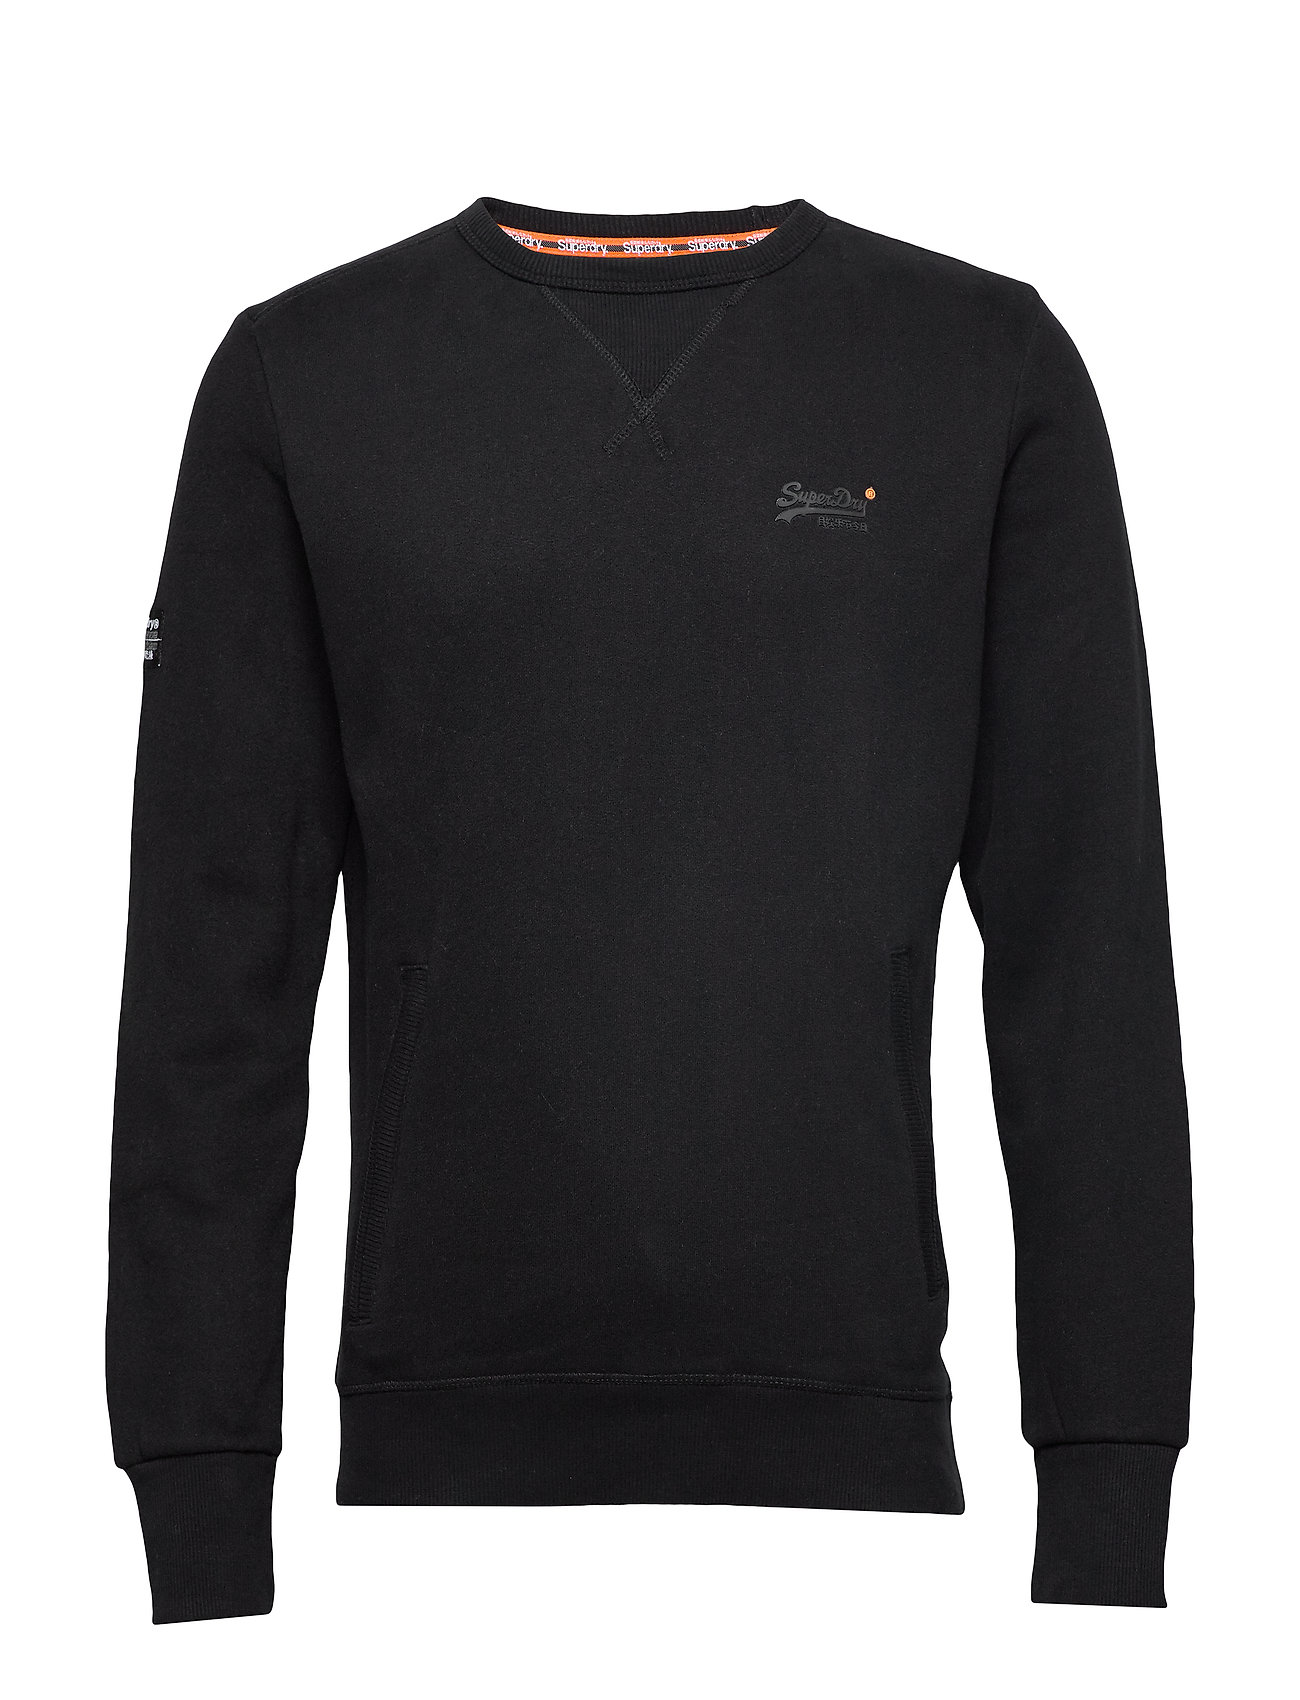 Superdry ORANGE LABEL URBAN CREW - BLACK